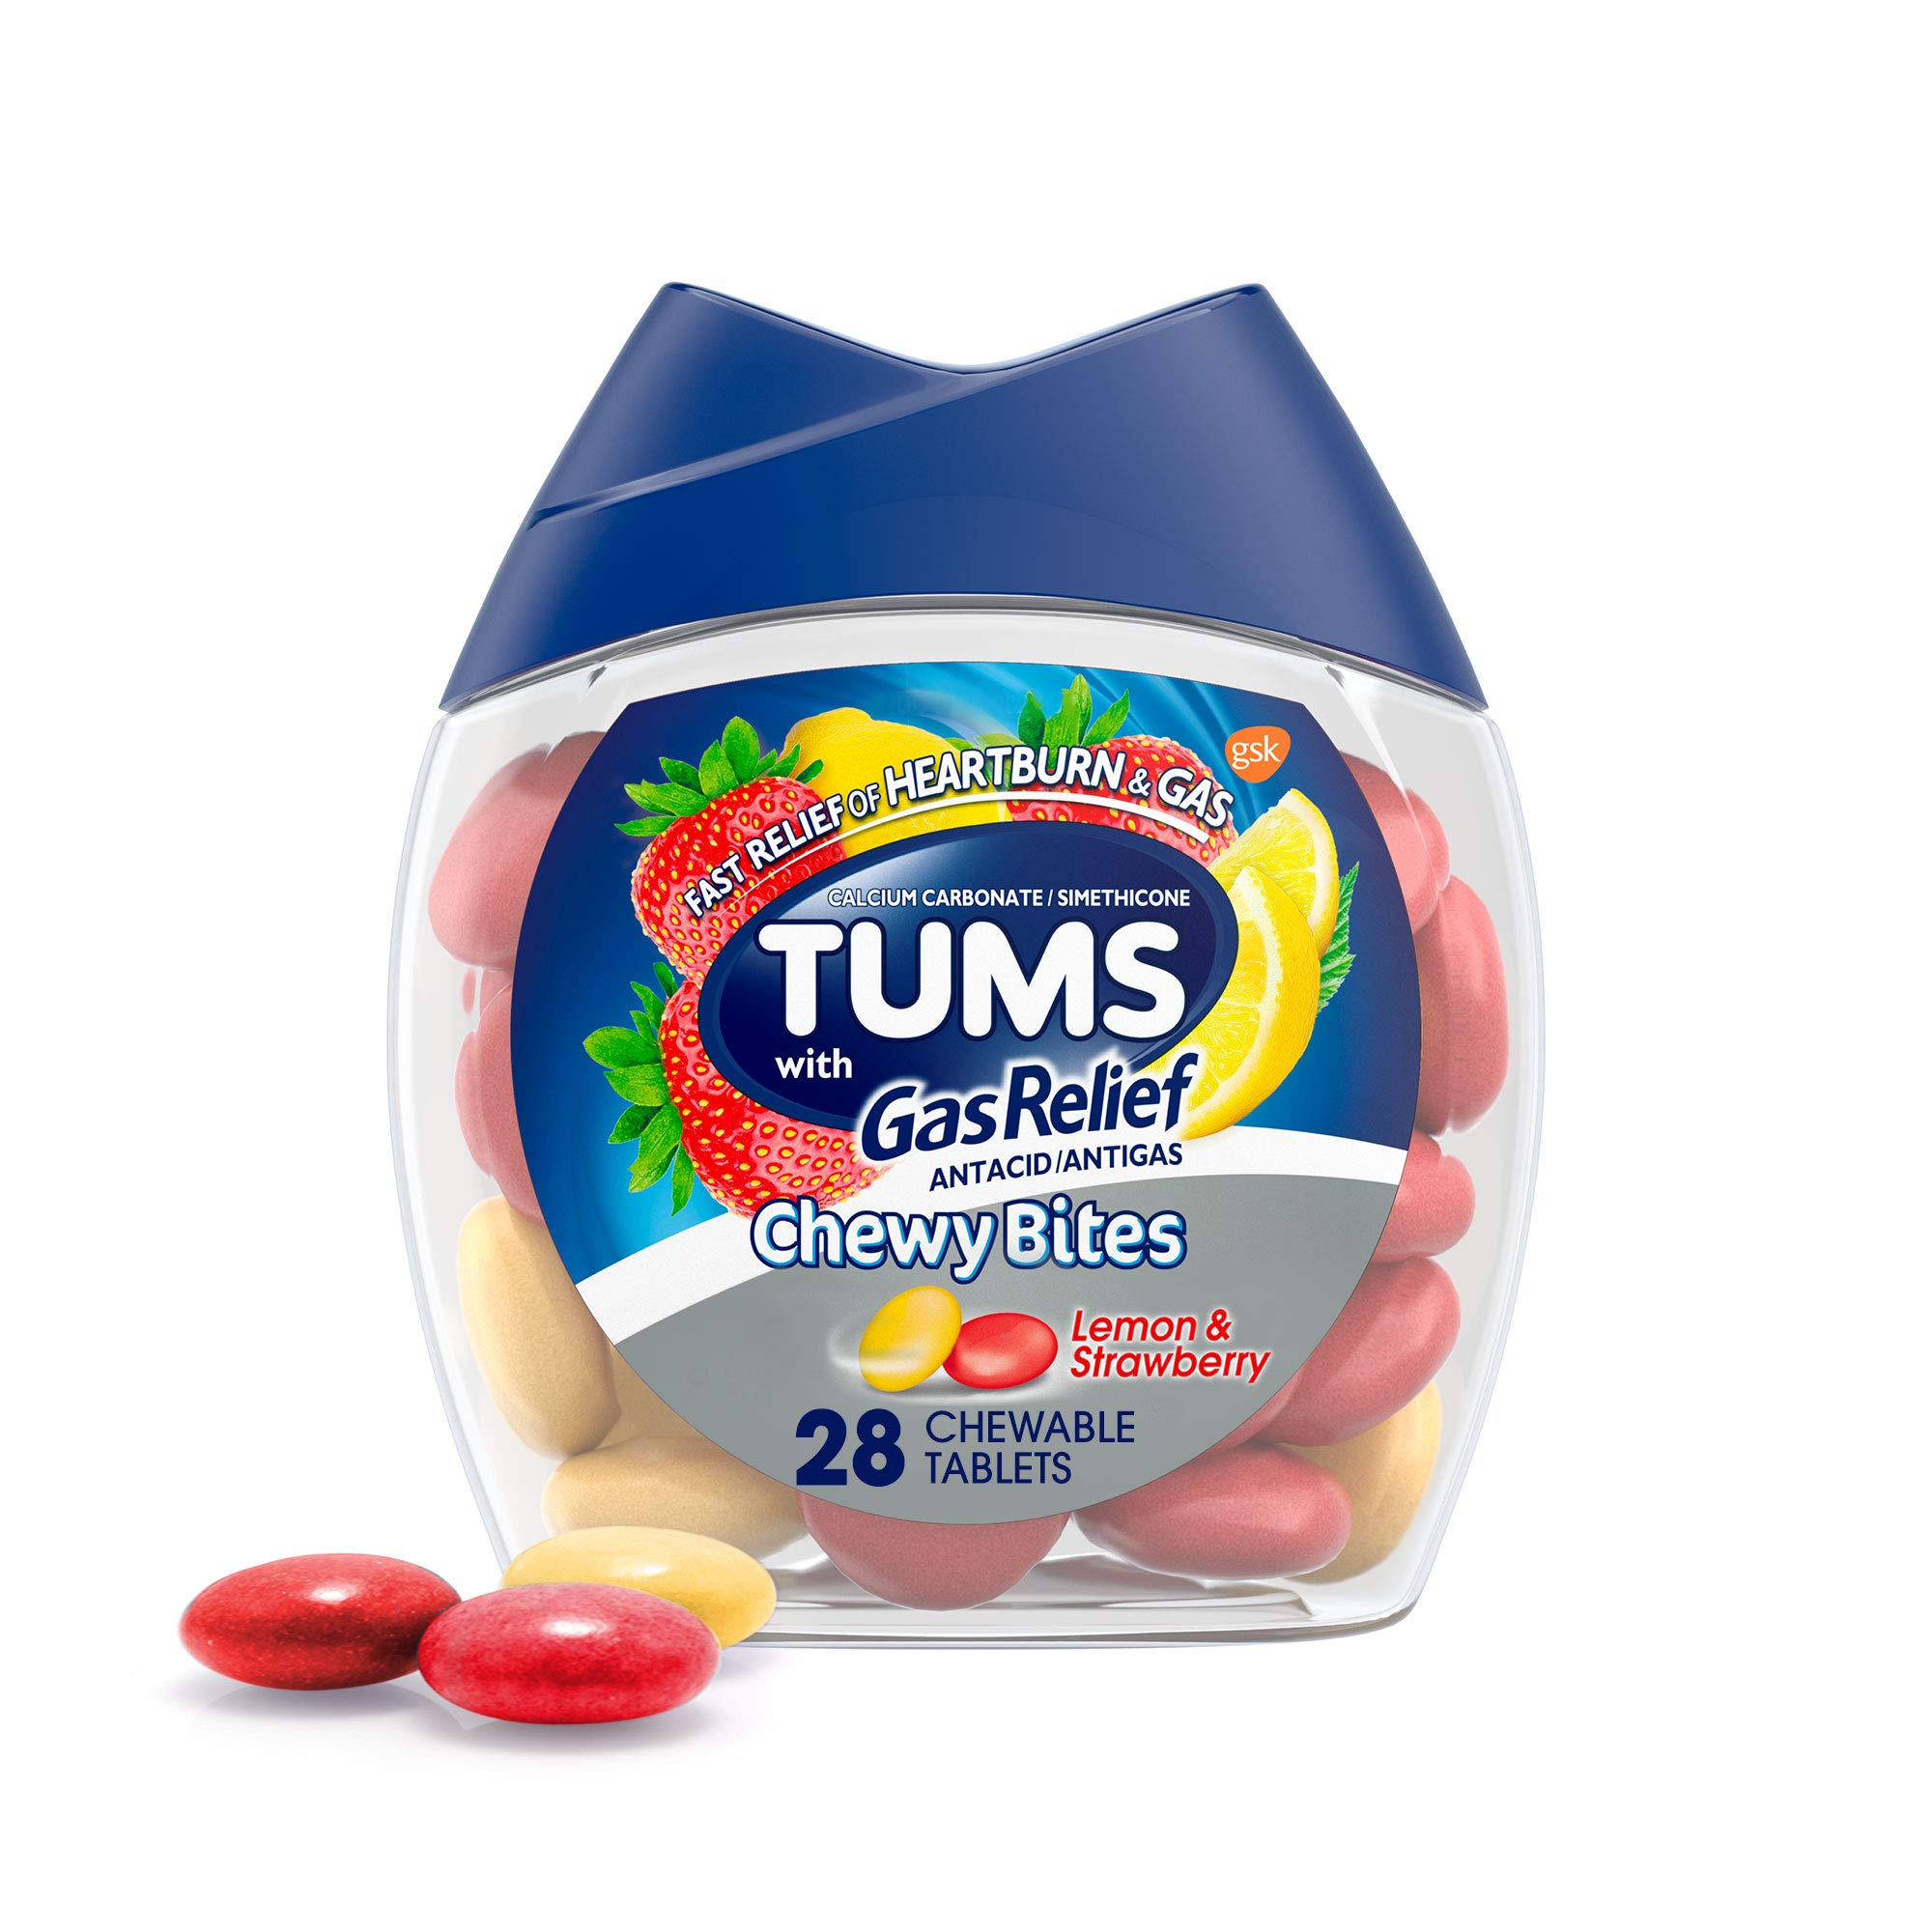 TUMS Chewy Bites Chewable Antacid Tablets with Gas Relief, Lemon & Strawberry - 28 Count